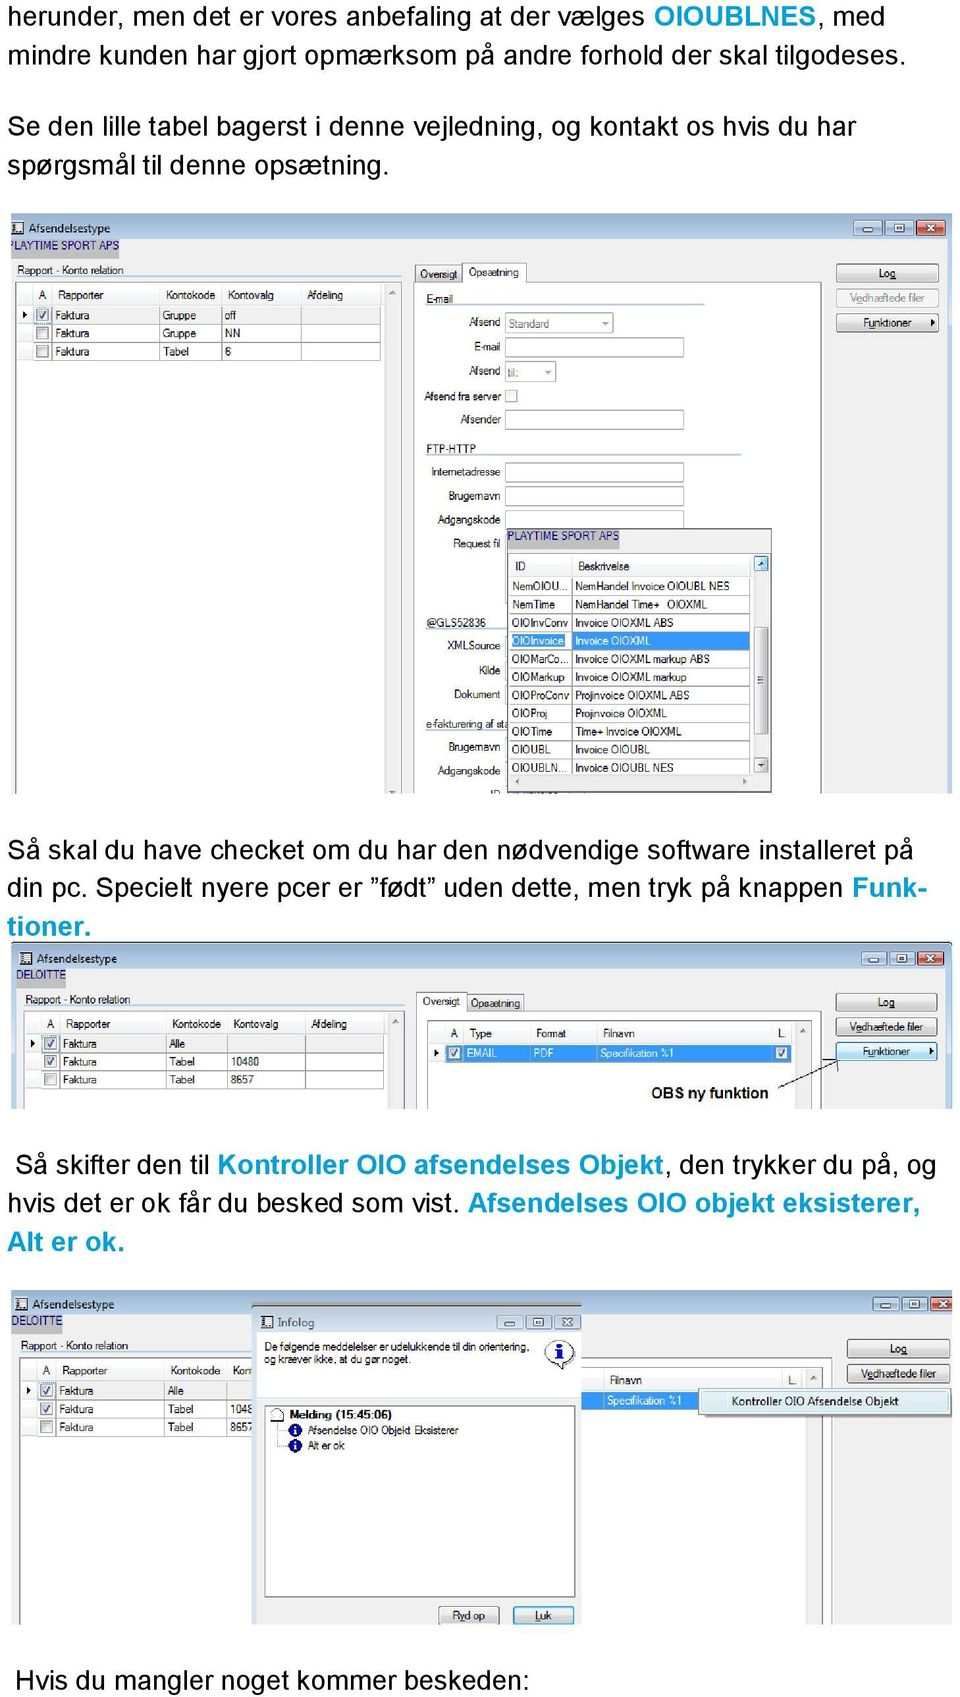 Så skal du have checket om du har den nødvendige software installeret på din pc.